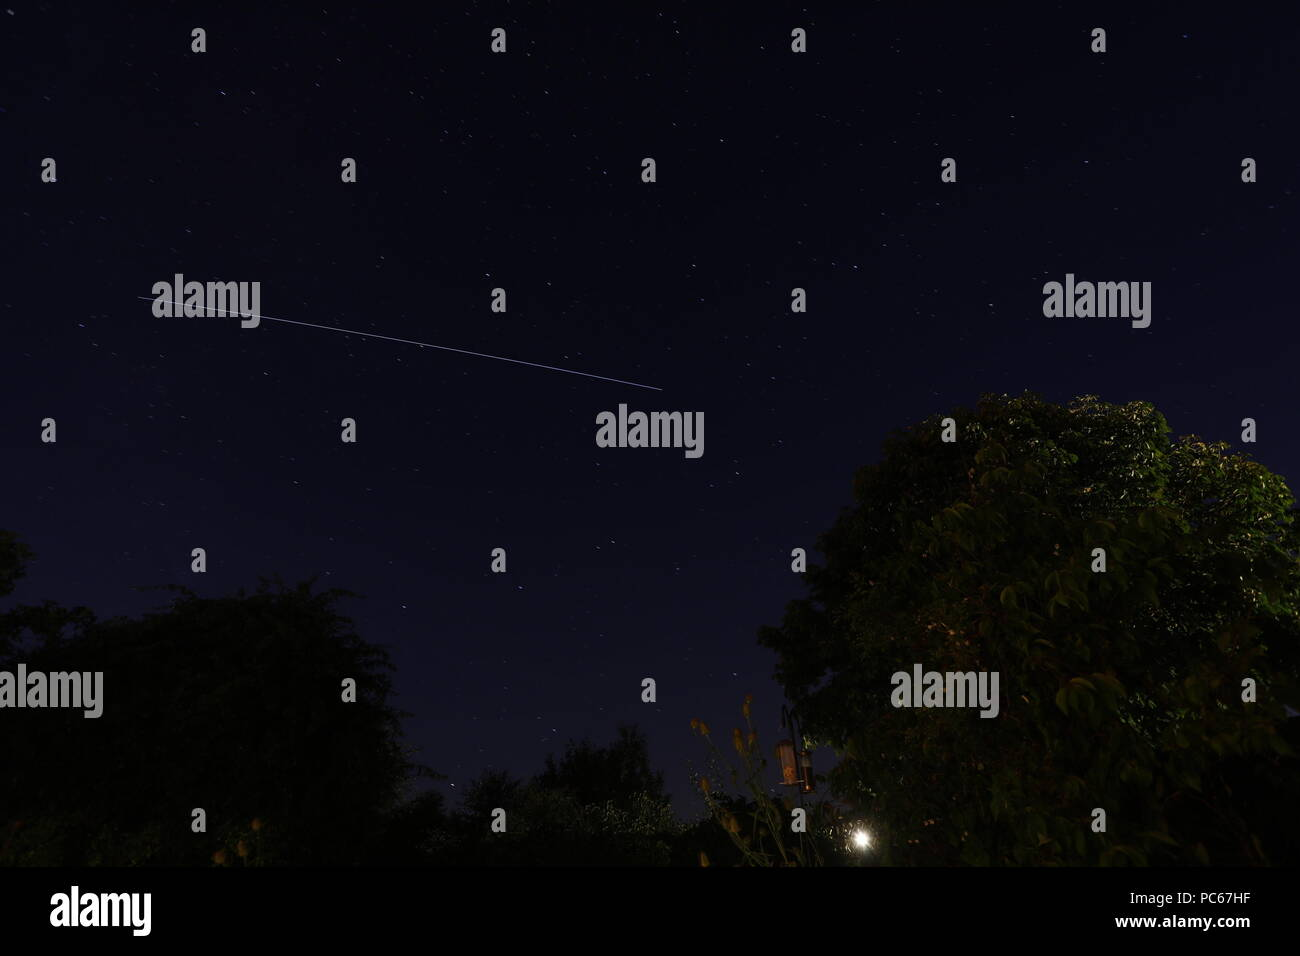 31st Jul 2018. UK weather. Clear skies this evening allow good views of the International Space Station over Hailsham,East Sussex, UK Credit: Ed Brown/Alamy Live News - Stock Image